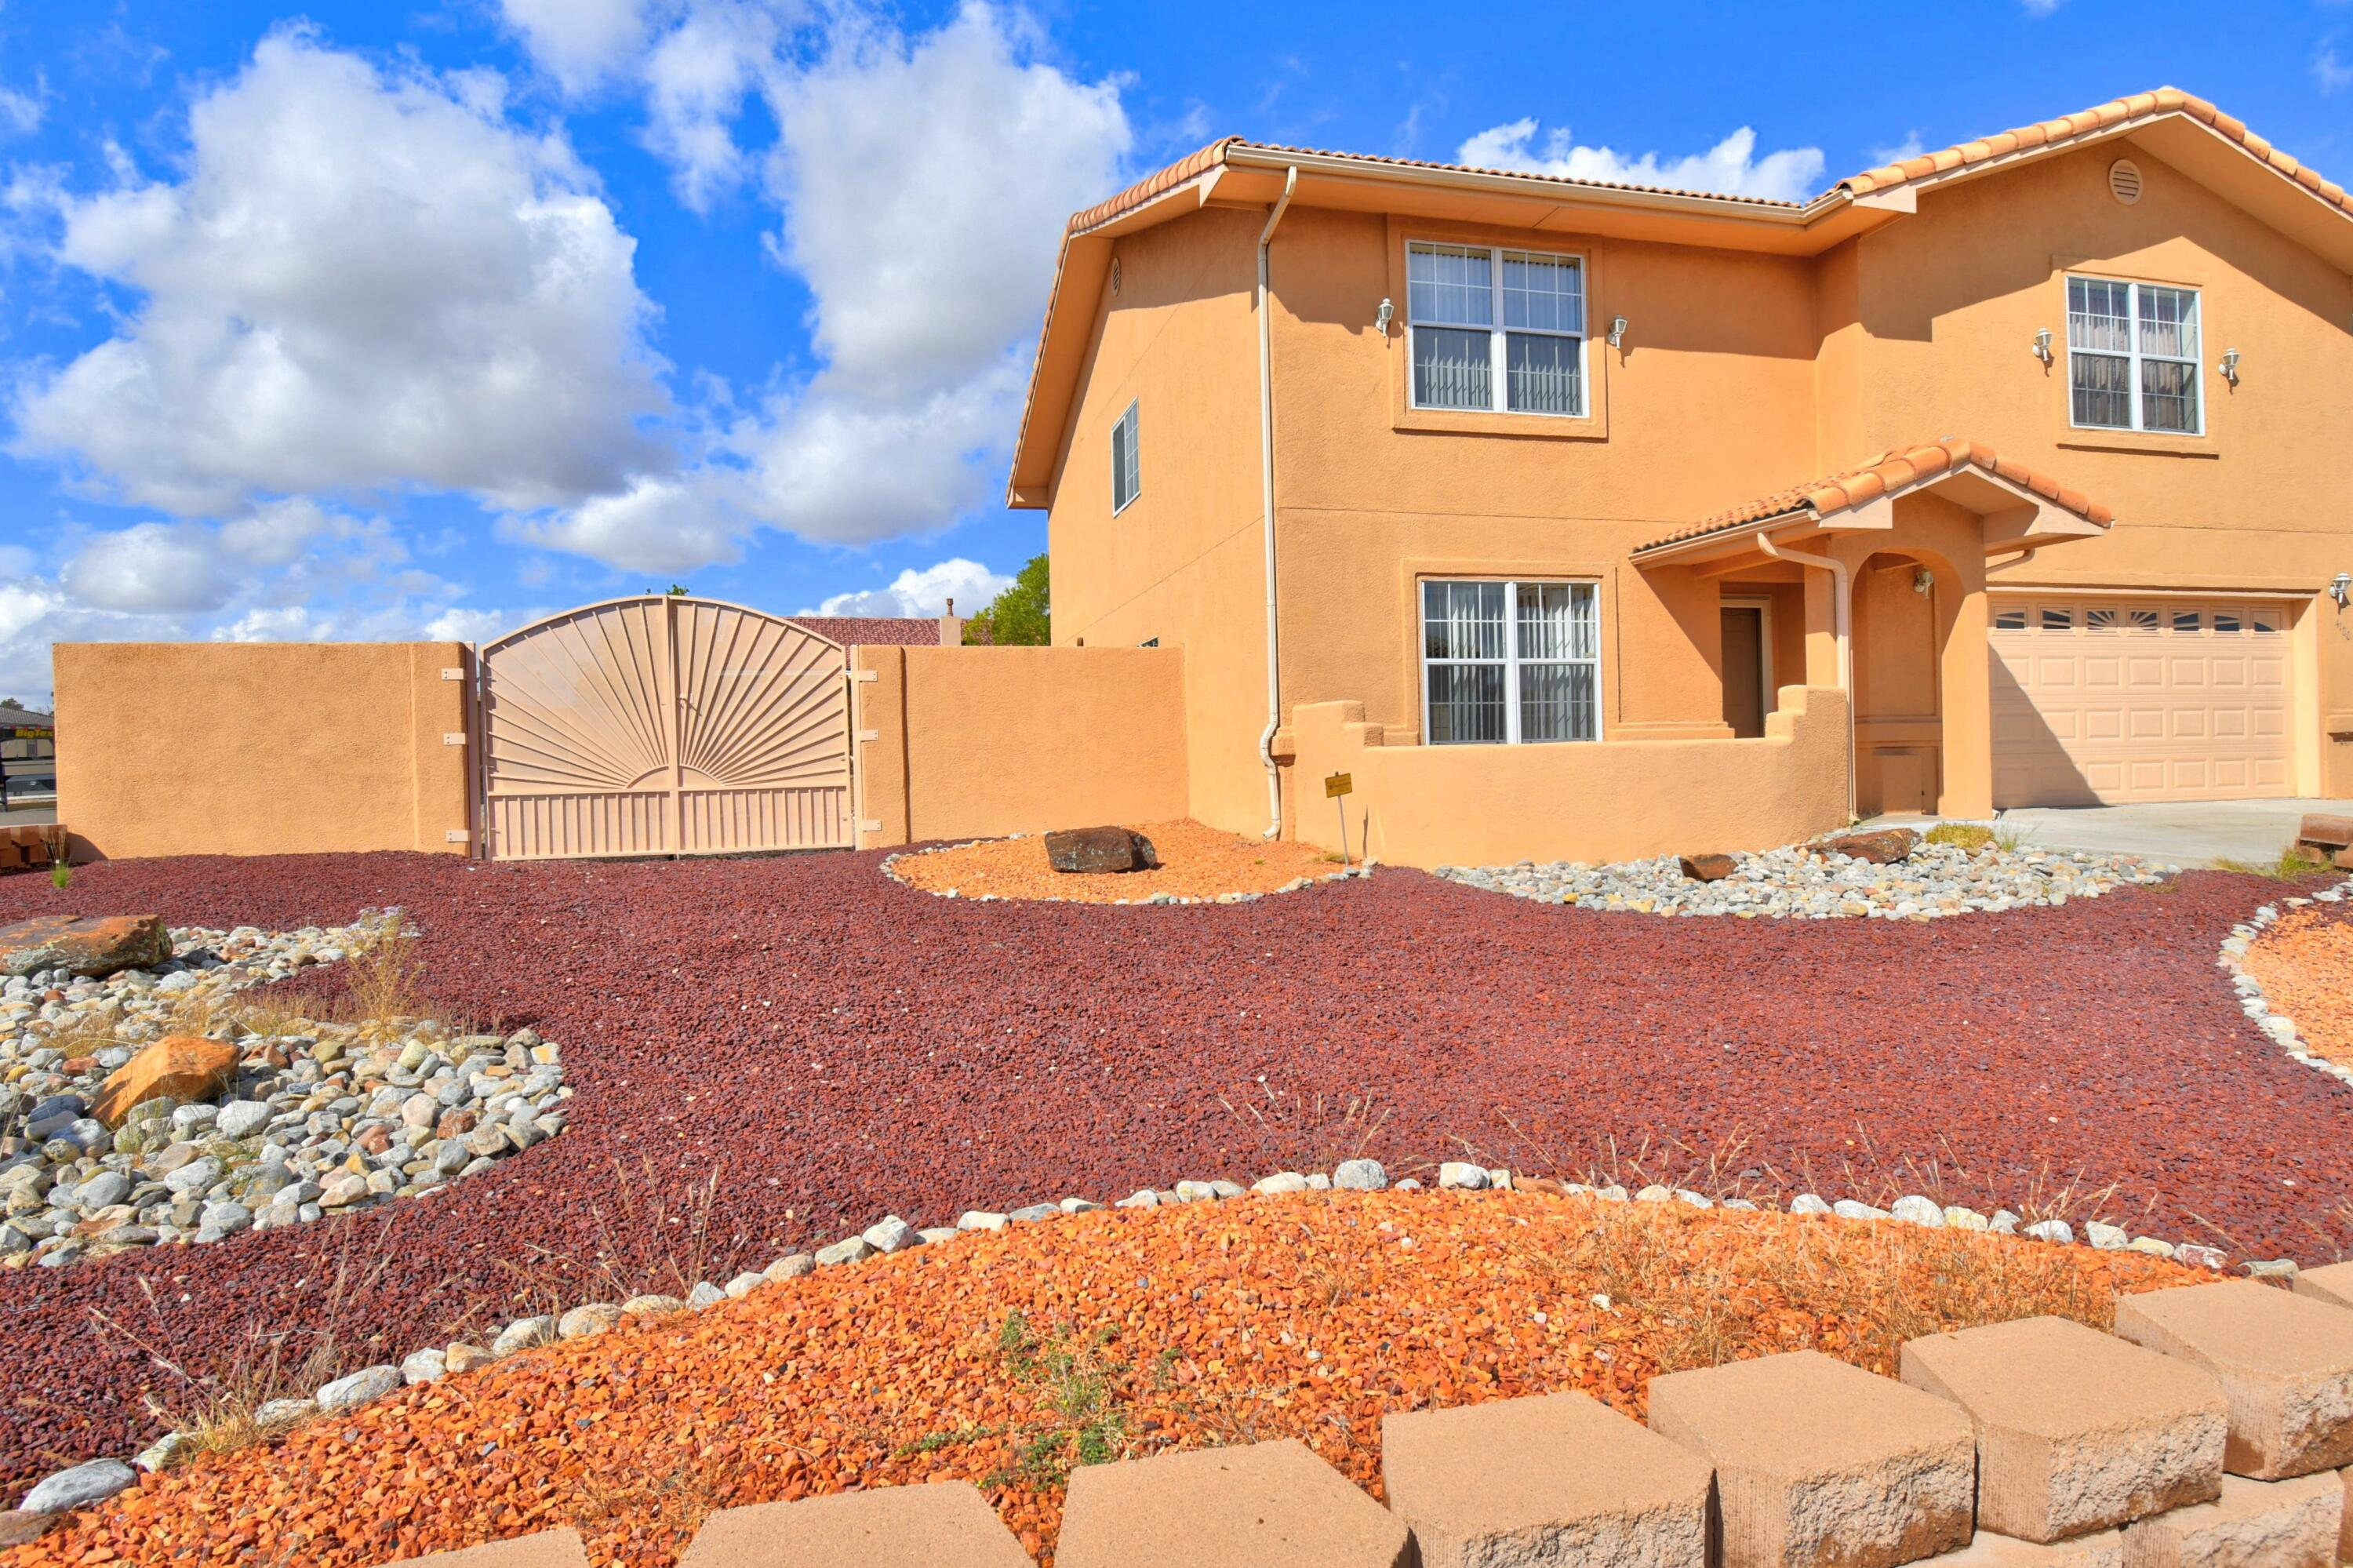 You've got to come take a look at this one owner, immaculately cared for home in one of the most desirable locations on Albuquerque's West Side. Huge Living Room/Dining Room combo greet you as your enter. Just beyond that is the Second living area with built in bookshelves and cozy fireplace. The kitchen offers beautiful granite counter tops, ceramic tile, pantry, kitchen island and plenty of cabinets and counter space. A 3/4 bath, two car garage and wonderful 10 x 22 foot sunroom complete the downstairs portion of this home. Upstairs you are greeted by a loft which could easily double as an office, three additional bedrooms, a full bath and a large Main bedroom that features it's own fireplace and bathroom that has separate shower, garden/jacuzzi tub, double vanity and walk in closet.